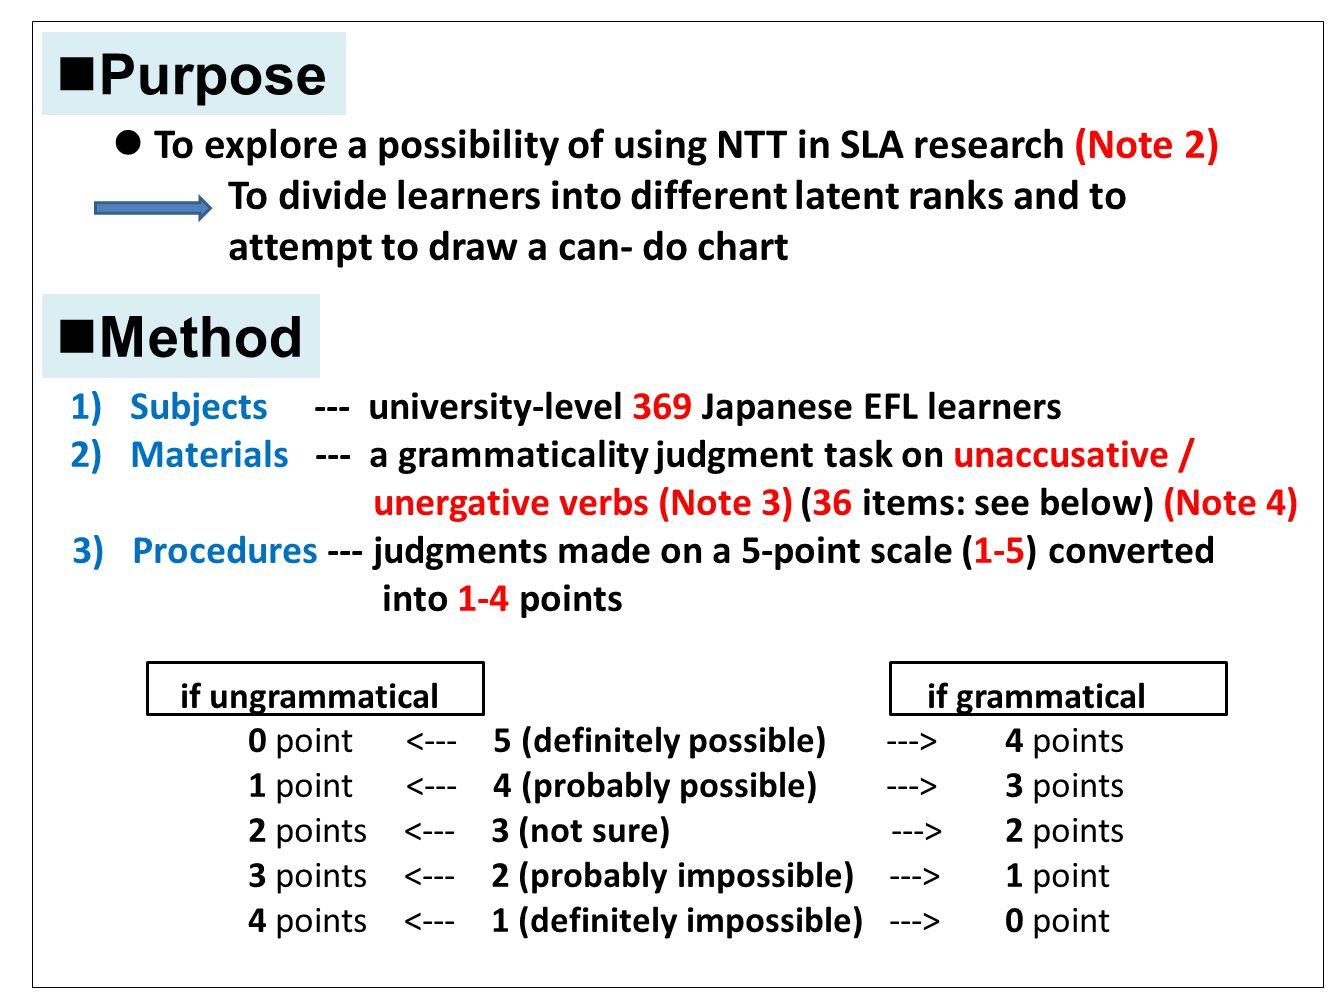 To explore a possibility of using NTT in SLA research (Note 2) To divide learners into different latent ranks and to attempt to draw a can- do chart 1) Subjects --- university-level 369 Japanese EFL learners 2) Materials --- a grammaticality judgment task on unaccusative / unergative verbs (Note 3) (36 items: see below) (Note 4) 3) Procedures --- judgments made on a 5-point scale (1-5) converted into 1-4 points if ungrammatical if grammatical 0 point 4 points 1 point 3 points 2 points 2 points 3 points 1 point 4 points 0 point Method Purpose